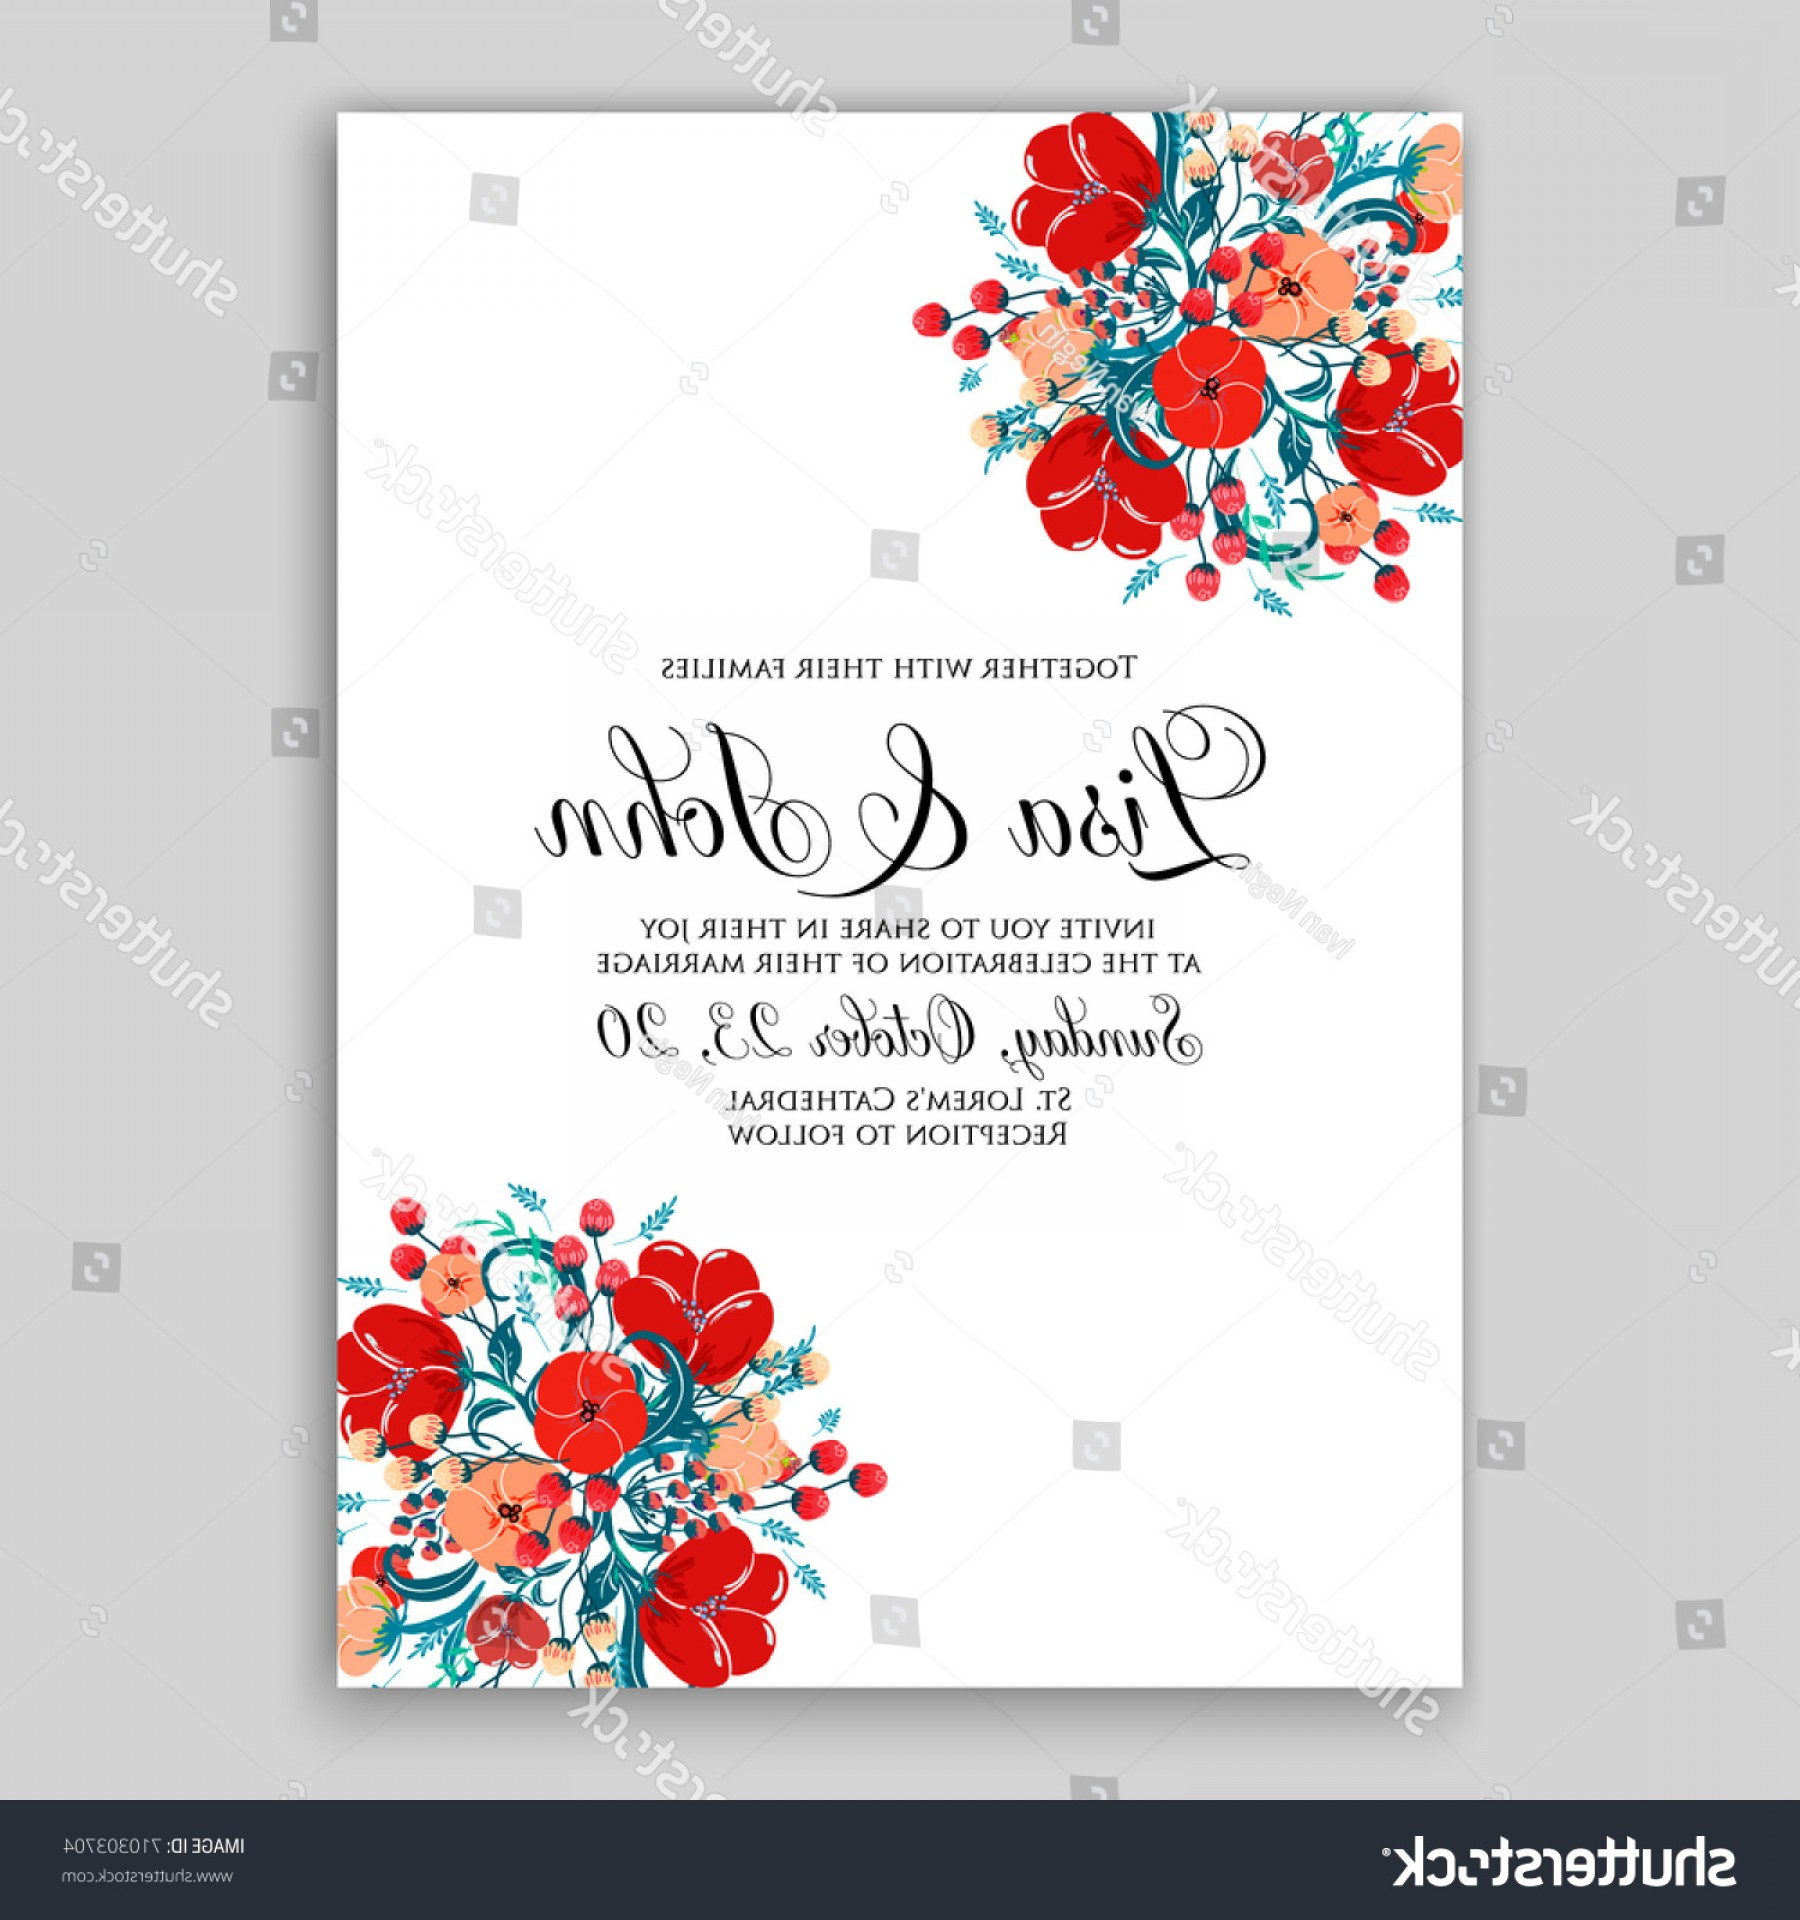 Rustic Wedding Invitation Vector: Romantic Spring Floral Rustic Flowers Background